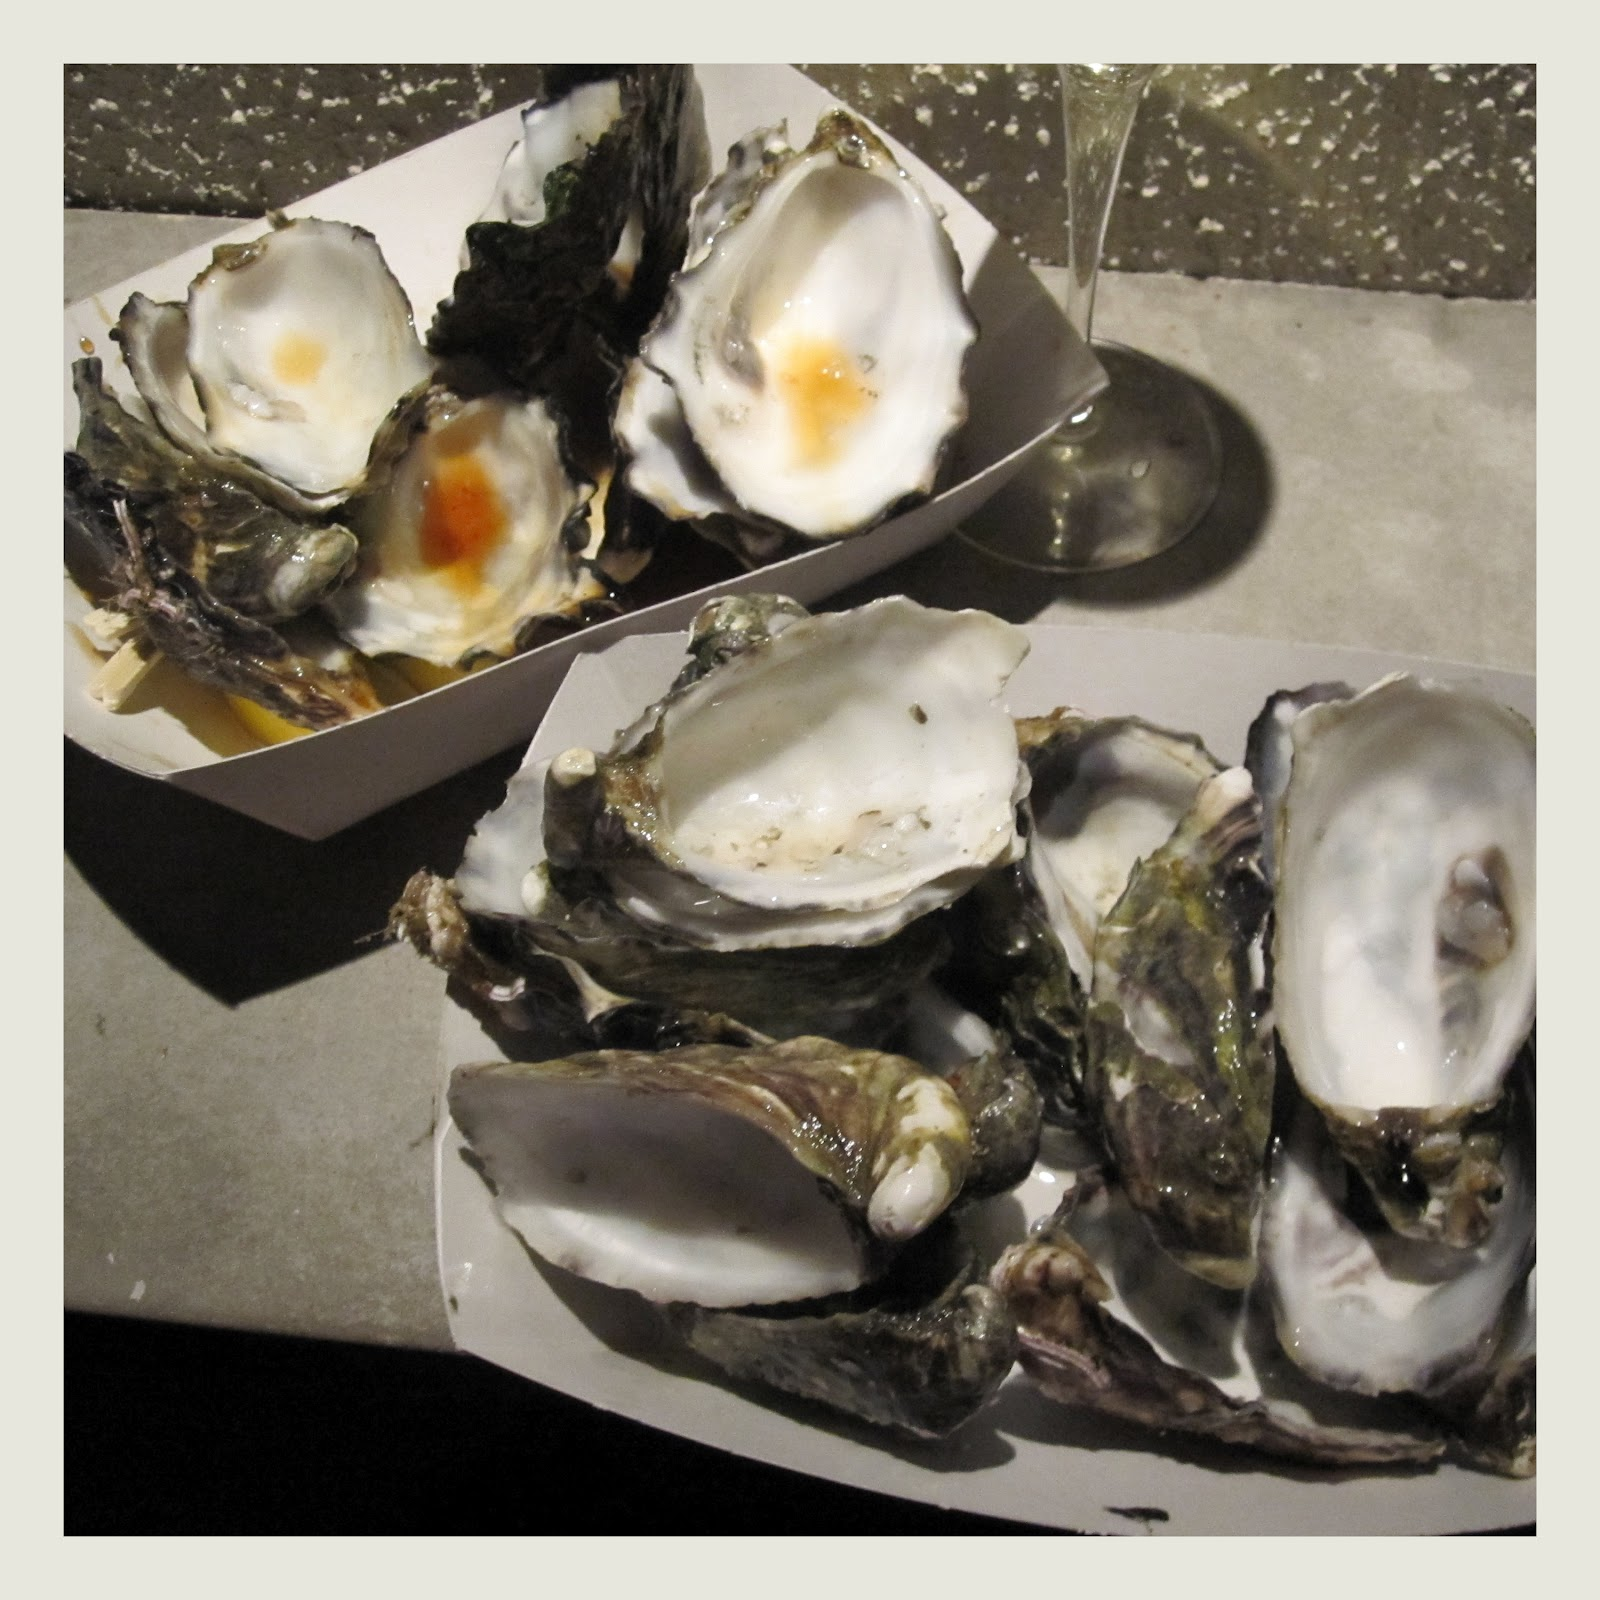 The glamourista oyster frenzy for Smoked oyster canape